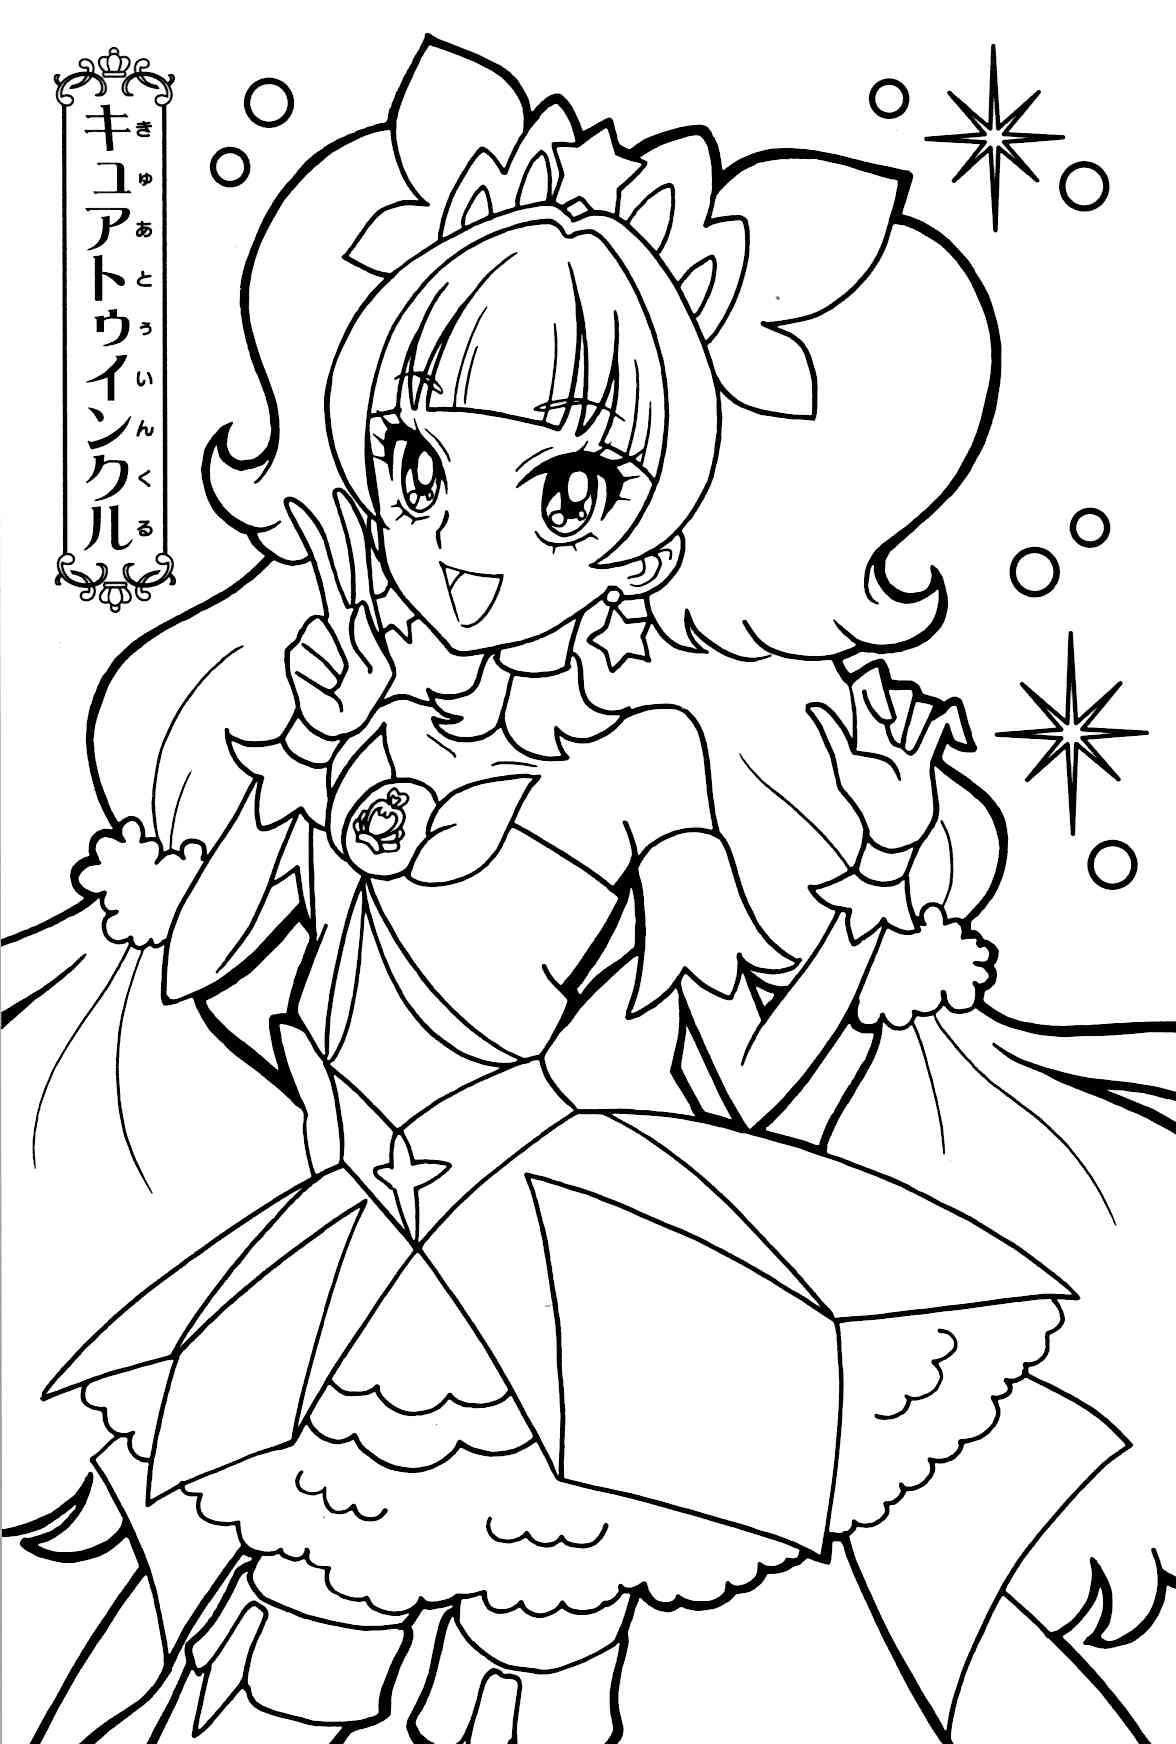 princess precure | cure twinkle | Anime coloring pages! | Pinterest ...